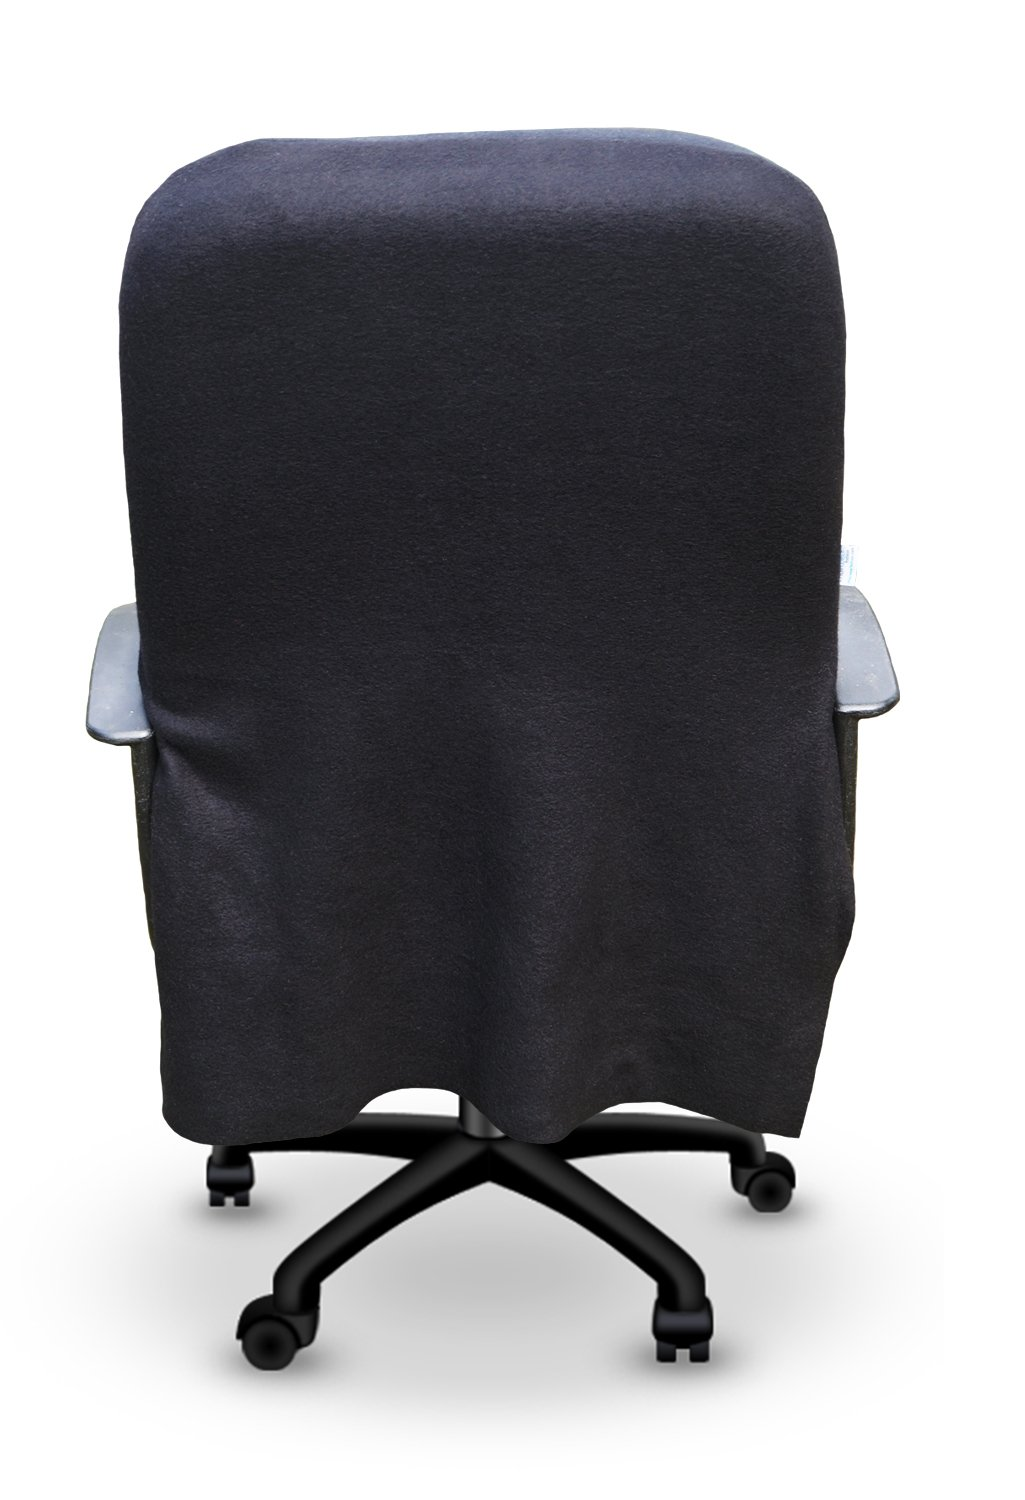 Office chair slipcovers - Amazon Com Cover For Office Computer Desk Chairs Solid Black Chair Slipcover Removable Washable Made In America The Chirt Kitchen Dining